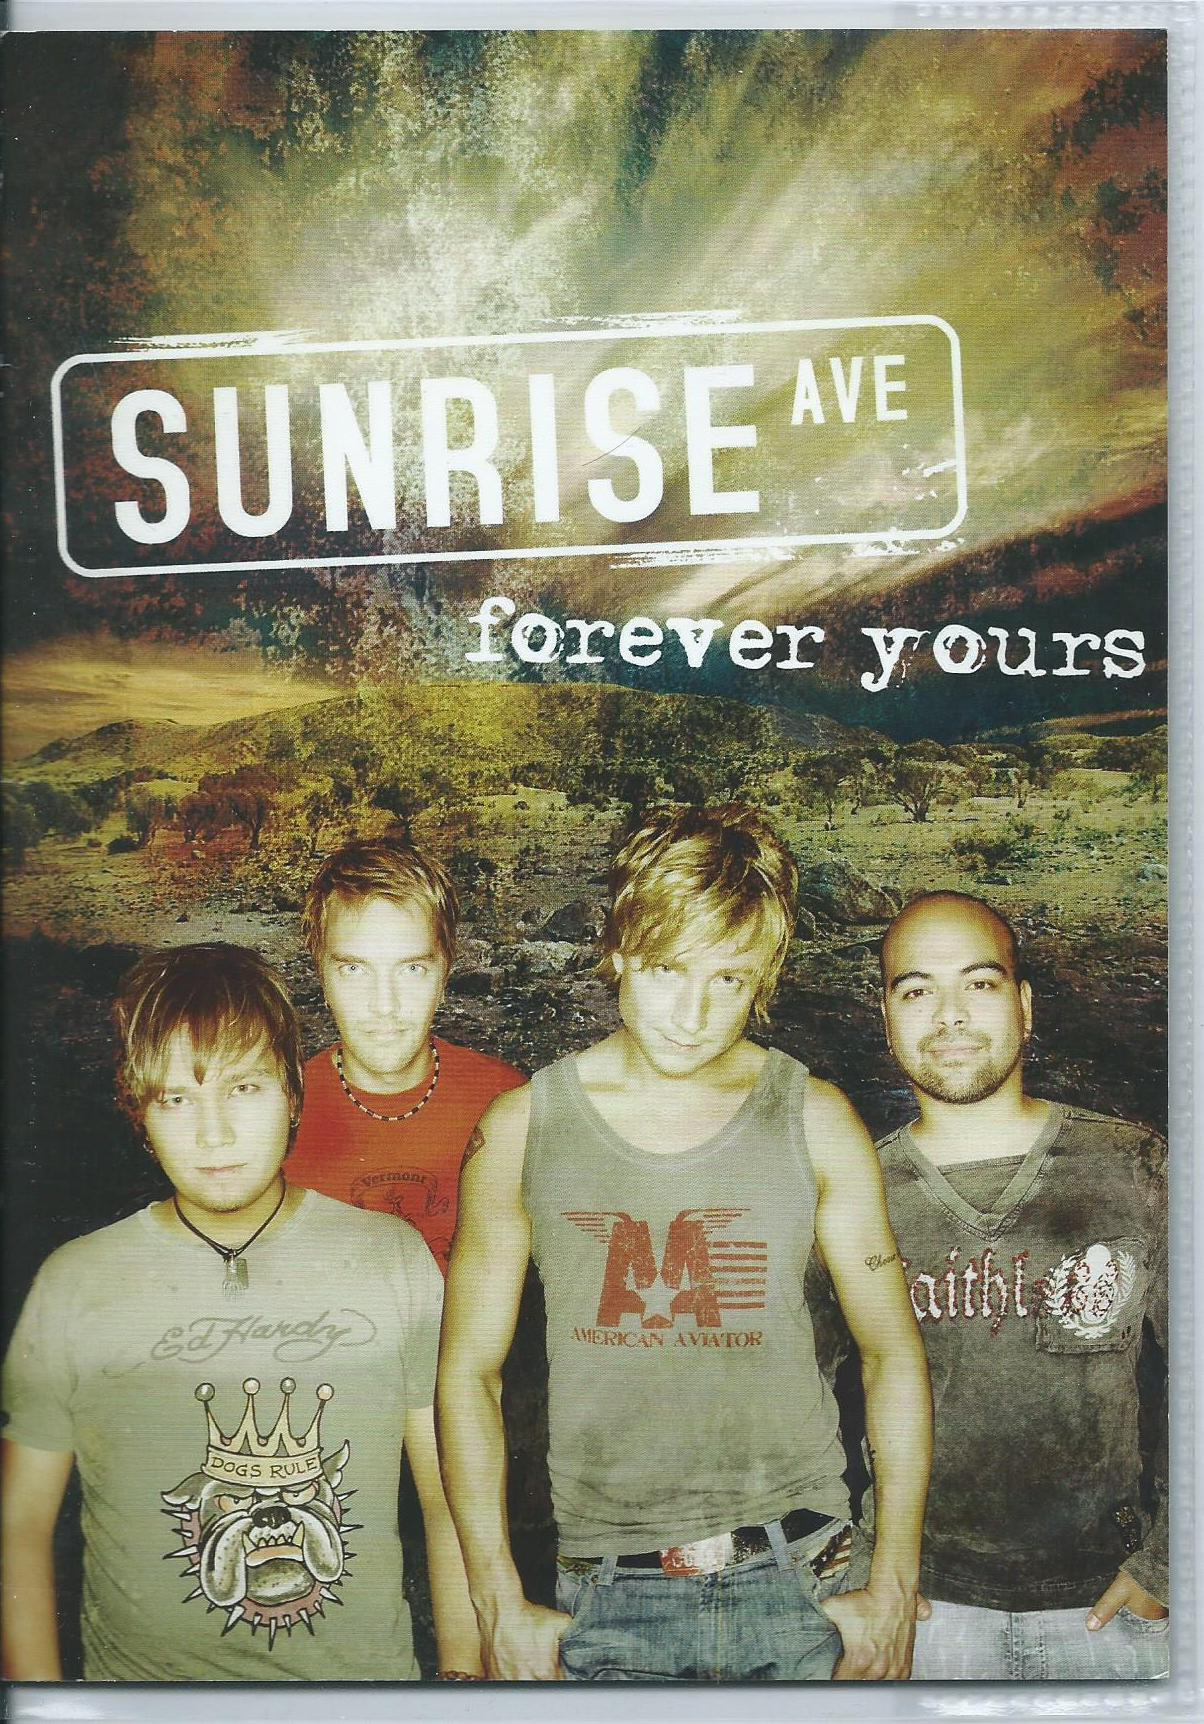 Sunrise avenue discography my collection - Sunrise avenue forever yours ...